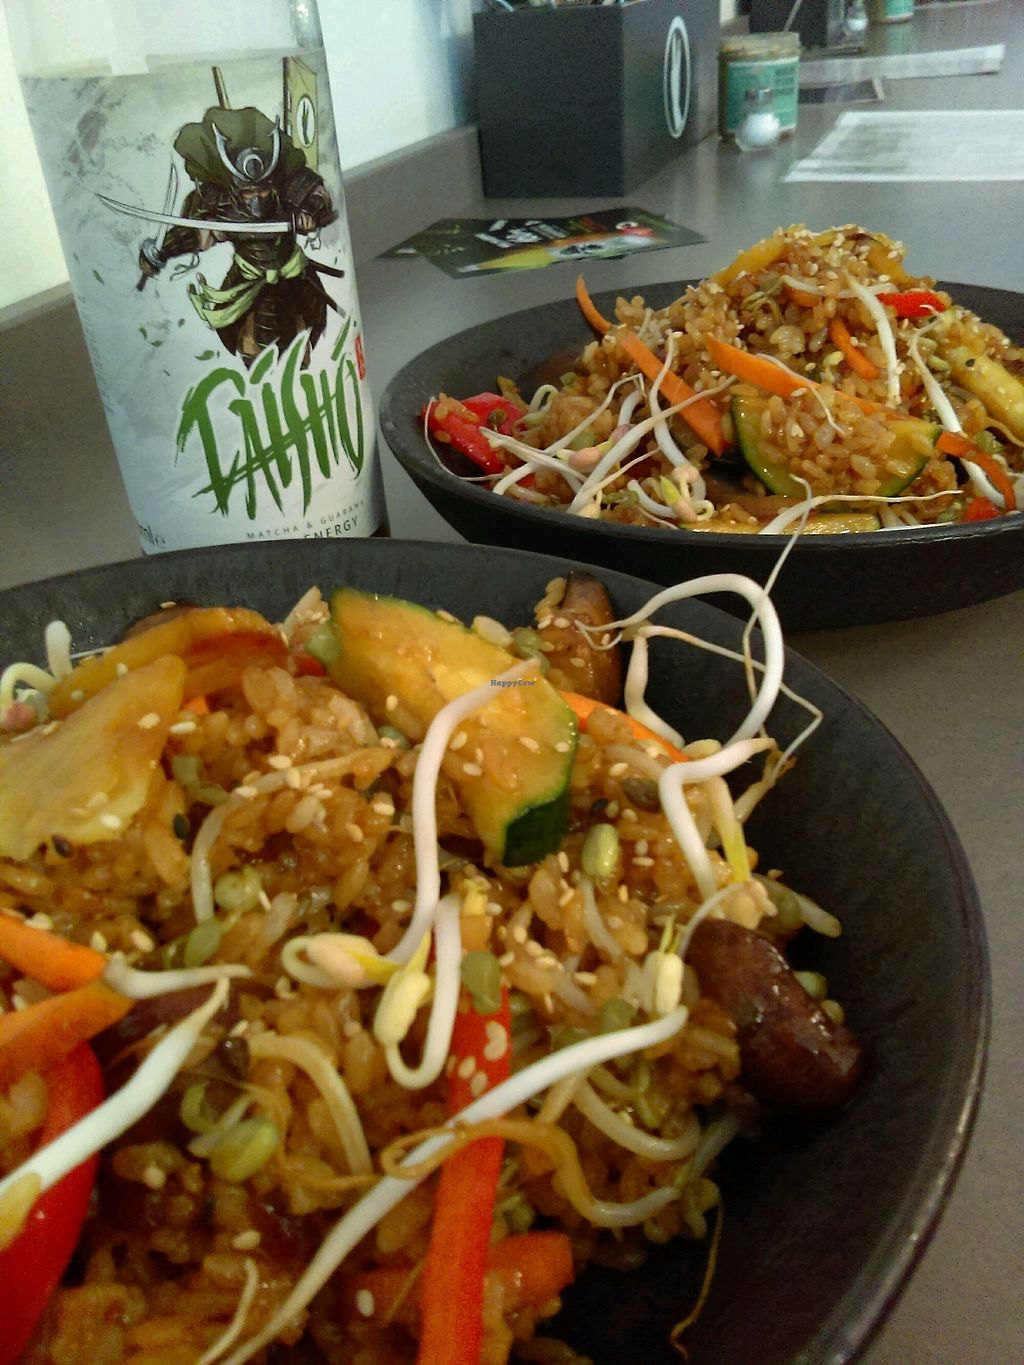 """Photo of Attila Hildmann Vegan Food  by <a href=""""/members/profile/LindaSt%C3%BCber"""">LindaStüber</a> <br/>Asia Style  <br/> October 8, 2017  - <a href='/contact/abuse/image/91807/313261'>Report</a>"""